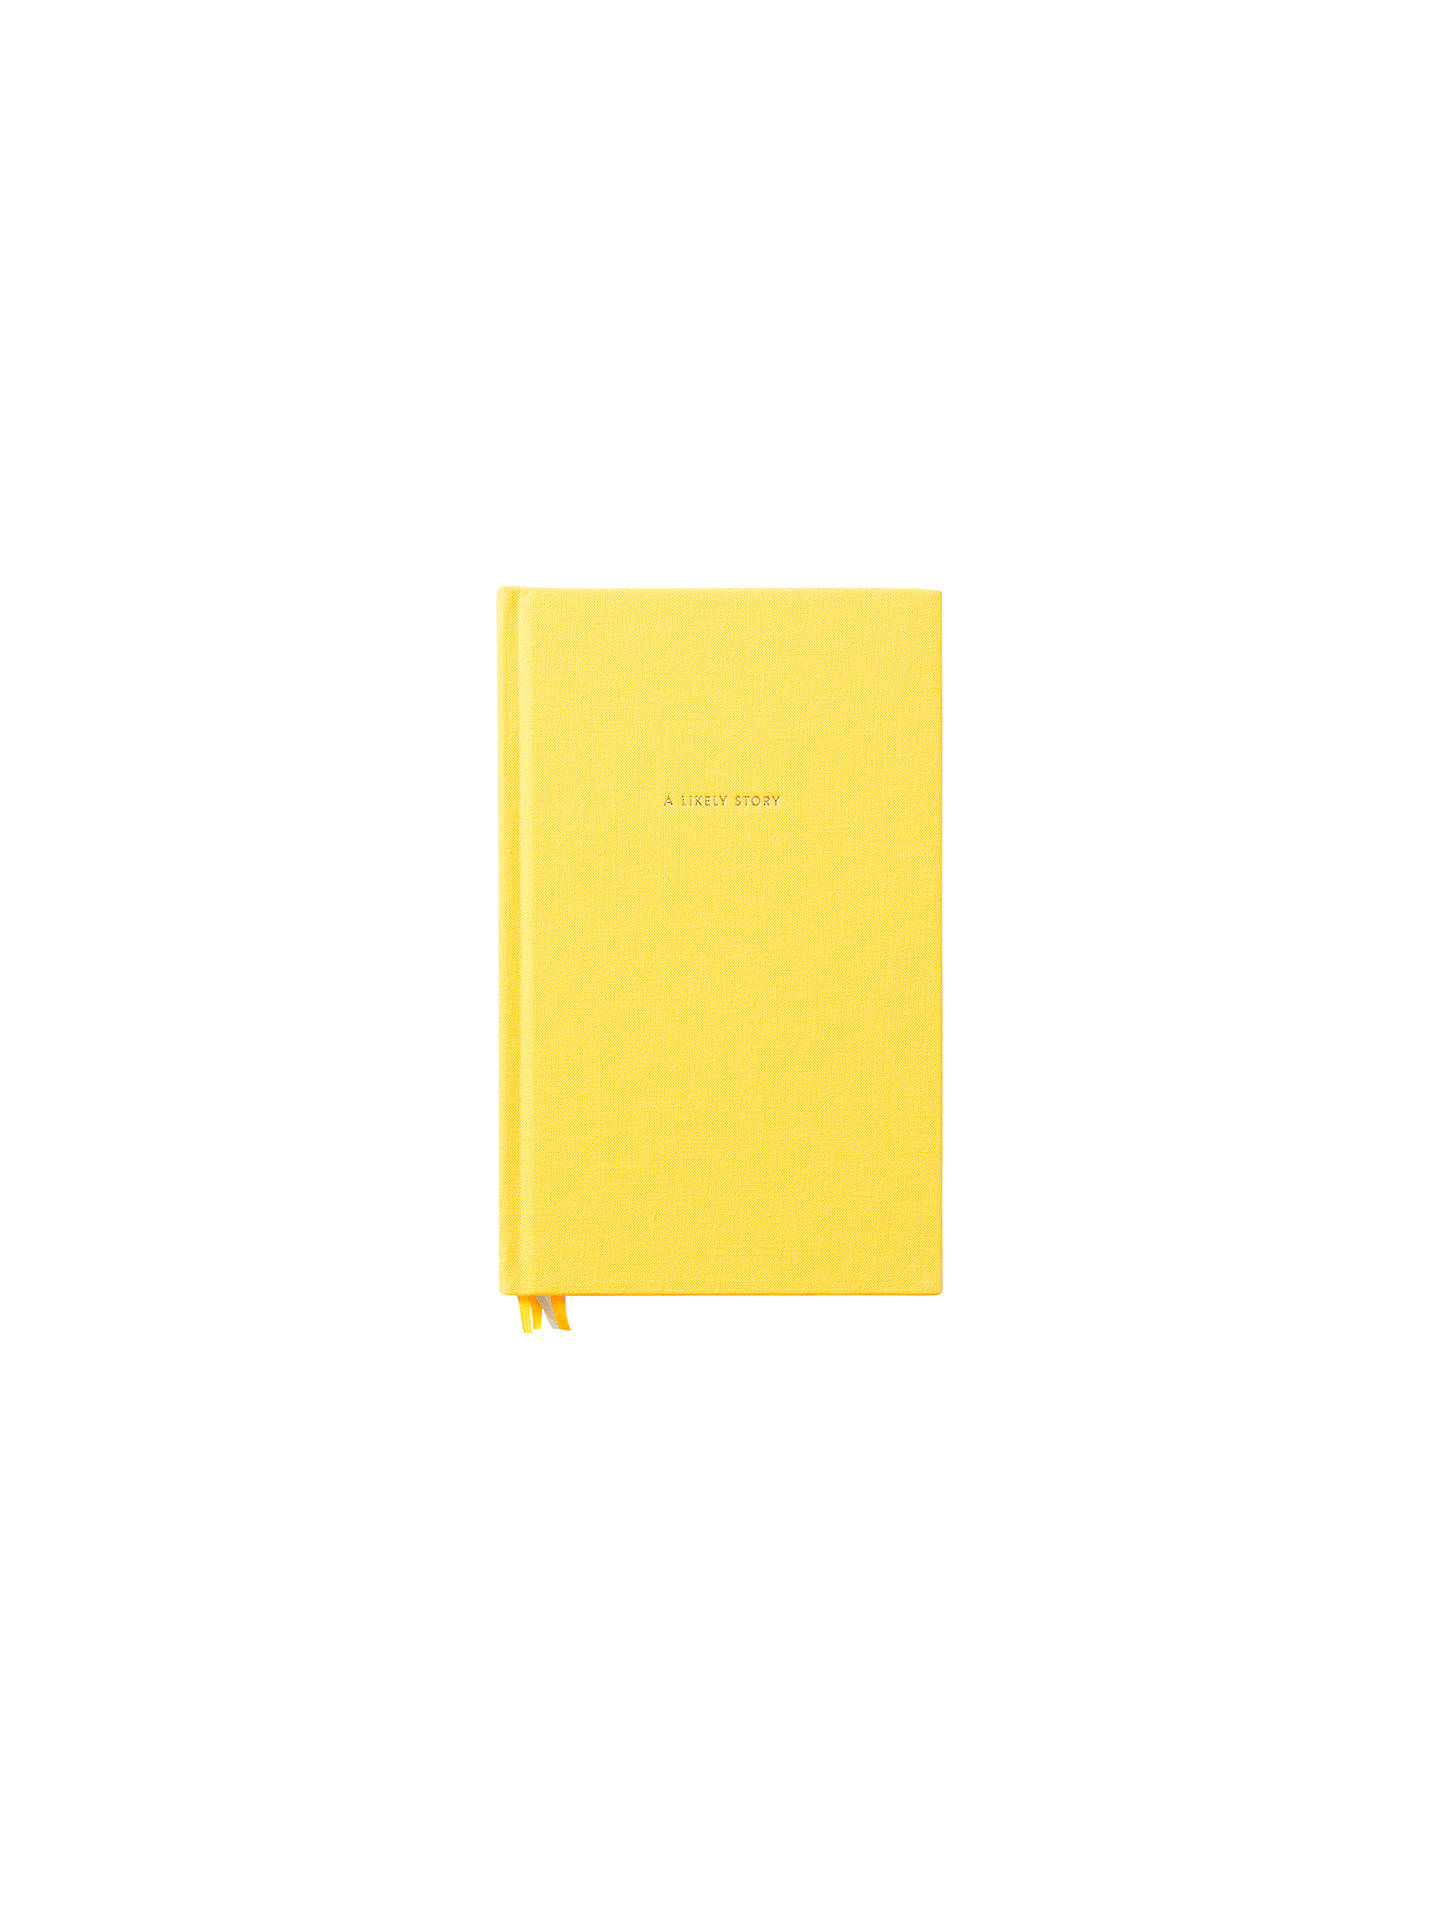 Buy kate spade new york, A Likely Story Notebook Online at johnlewis.com